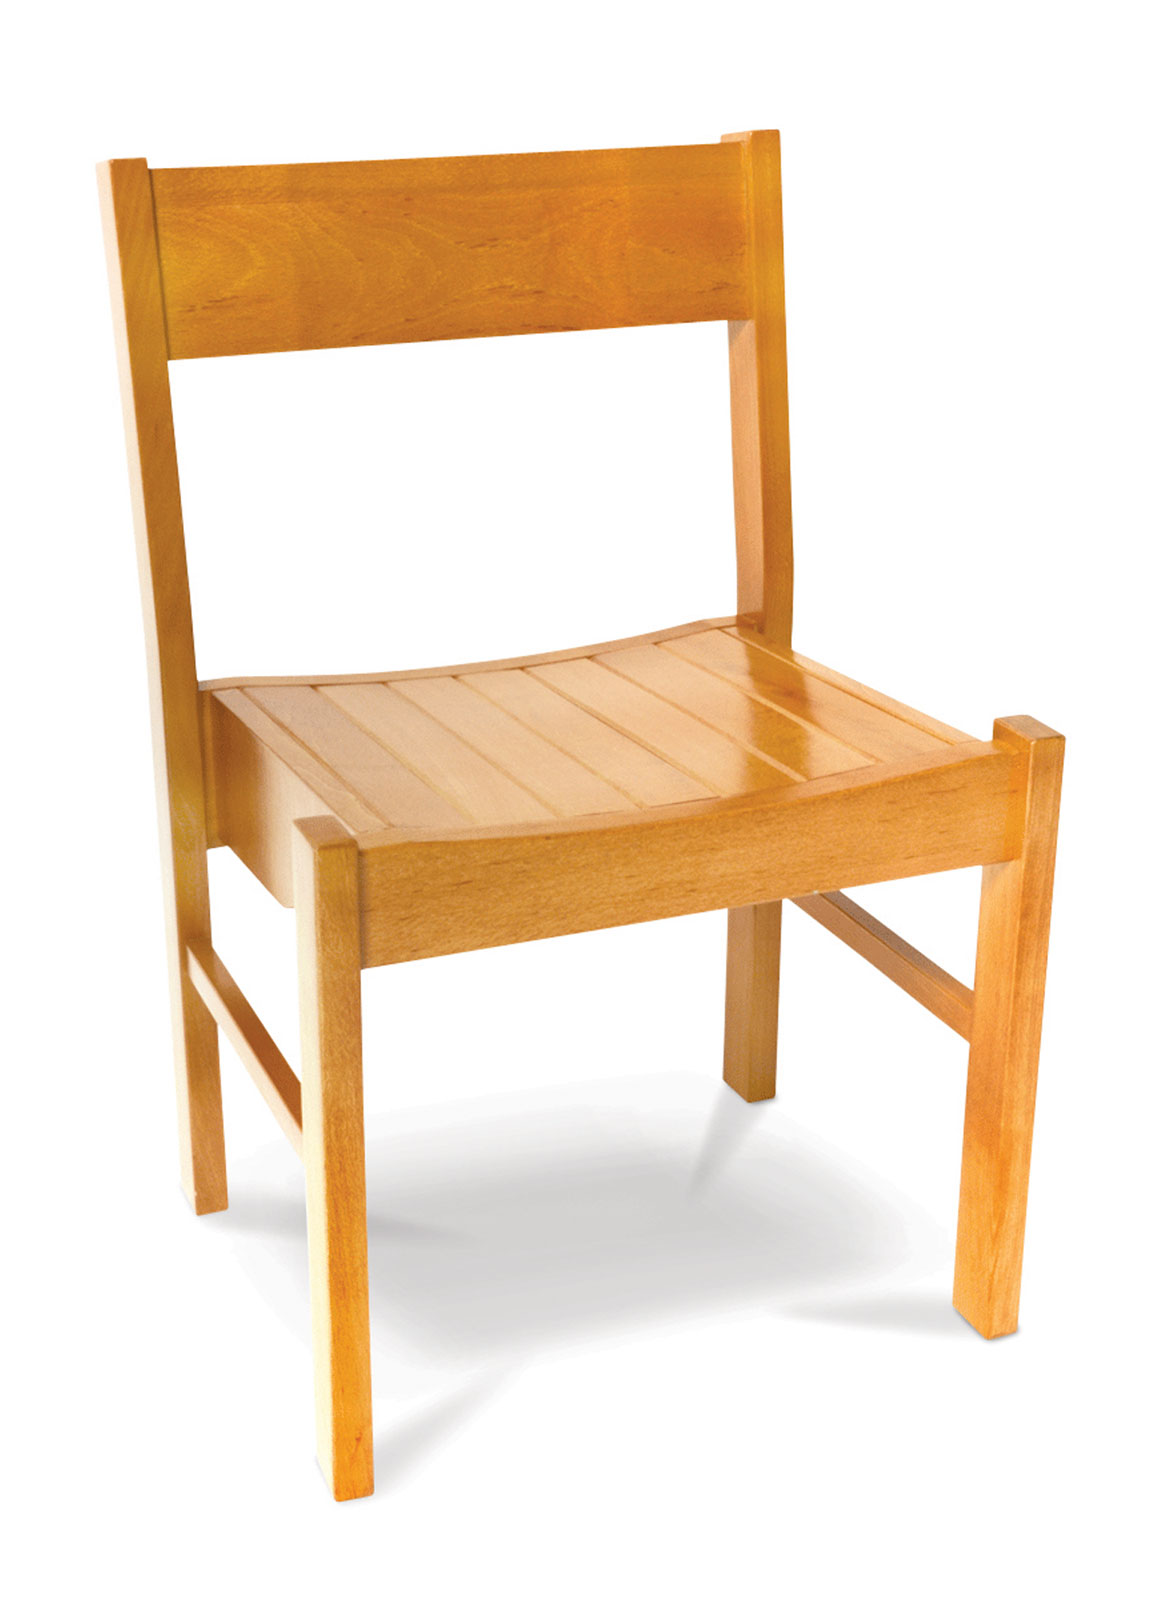 Wooden Church Chair THIS IS THE LAST ONE AT THIS PRICE